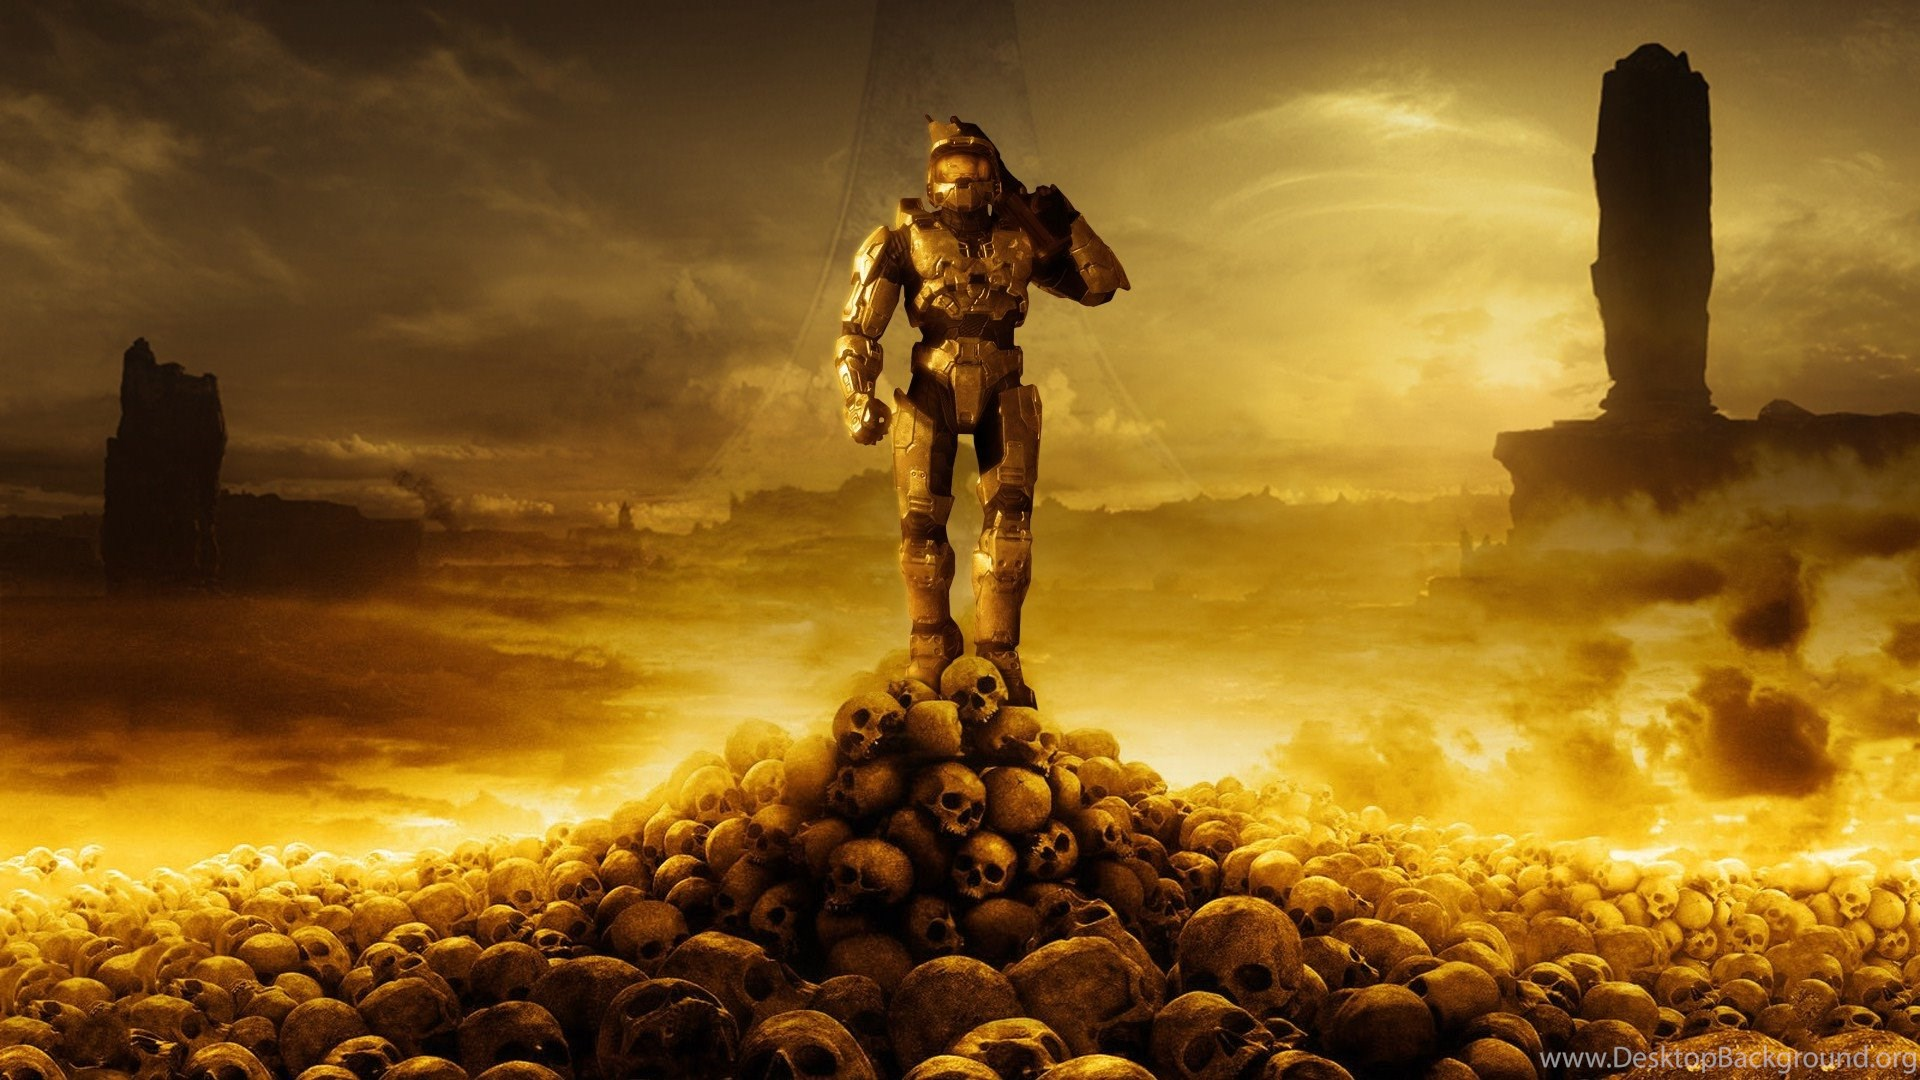 Halo Master Chief Halo 3 Skull Video Games Artwork Wallpapers